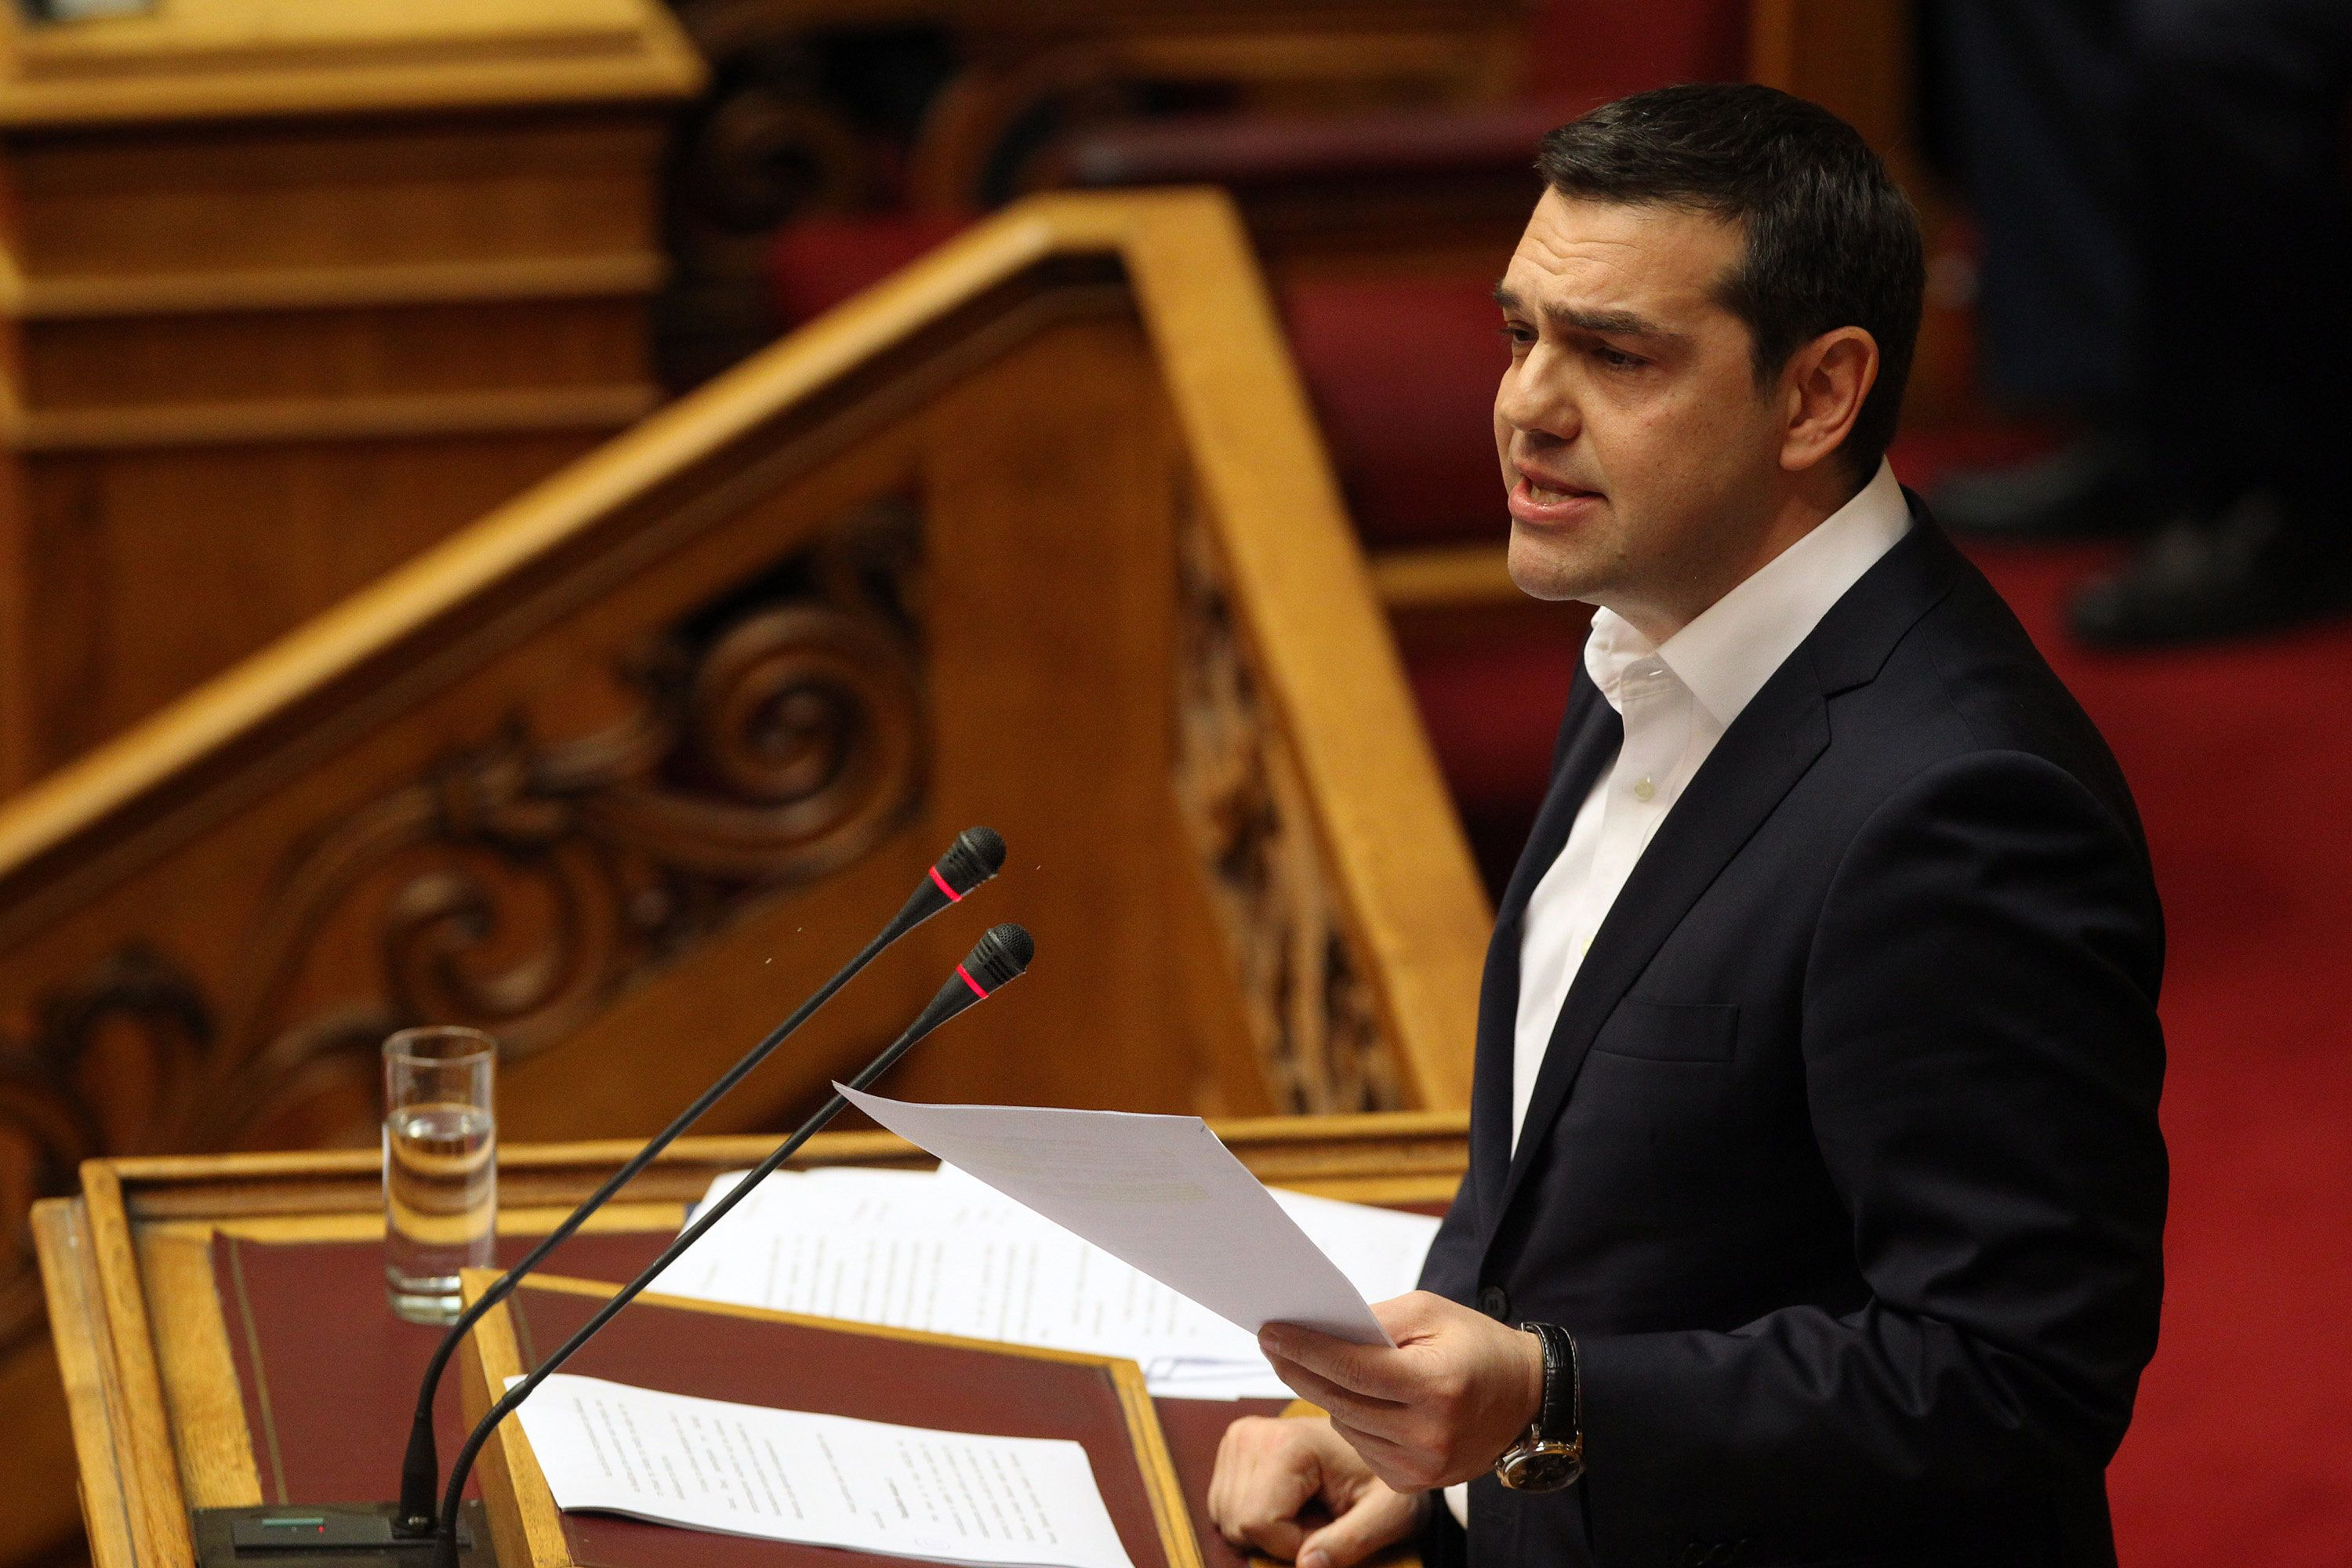 ATHENS, March 29, 2016-- Greek Prime Minister Alexis Tsipras addresses Parliament to open debate over justice issues in Athens, Greece on March 29, 2016. (Xinhua/Marios Lolos via Getty Images)